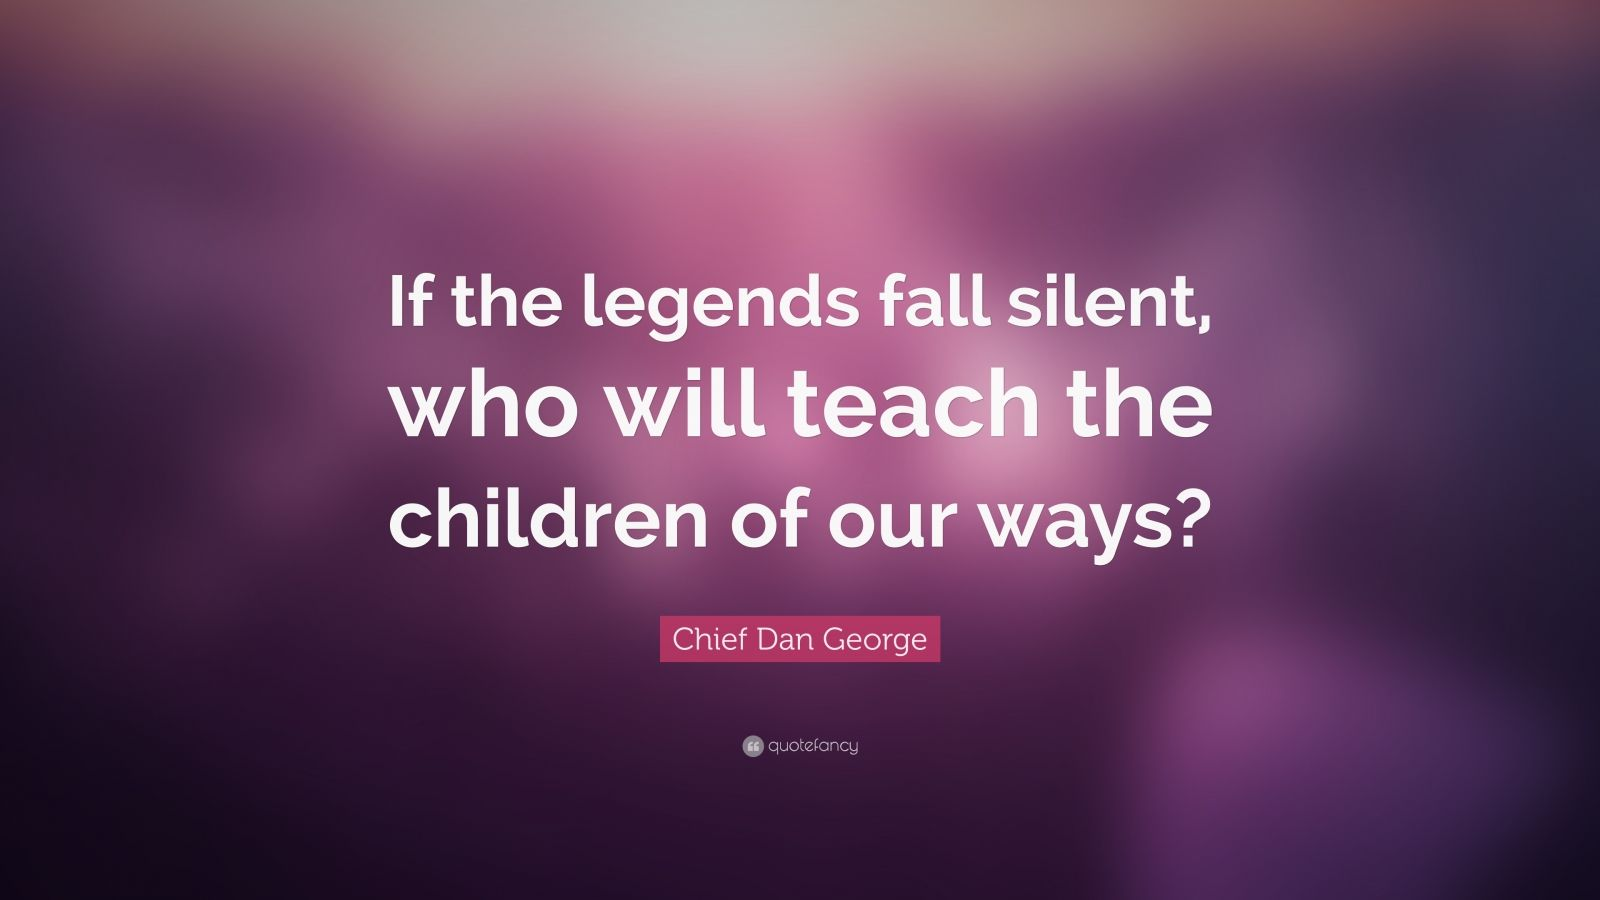 Fall Legends Quotes